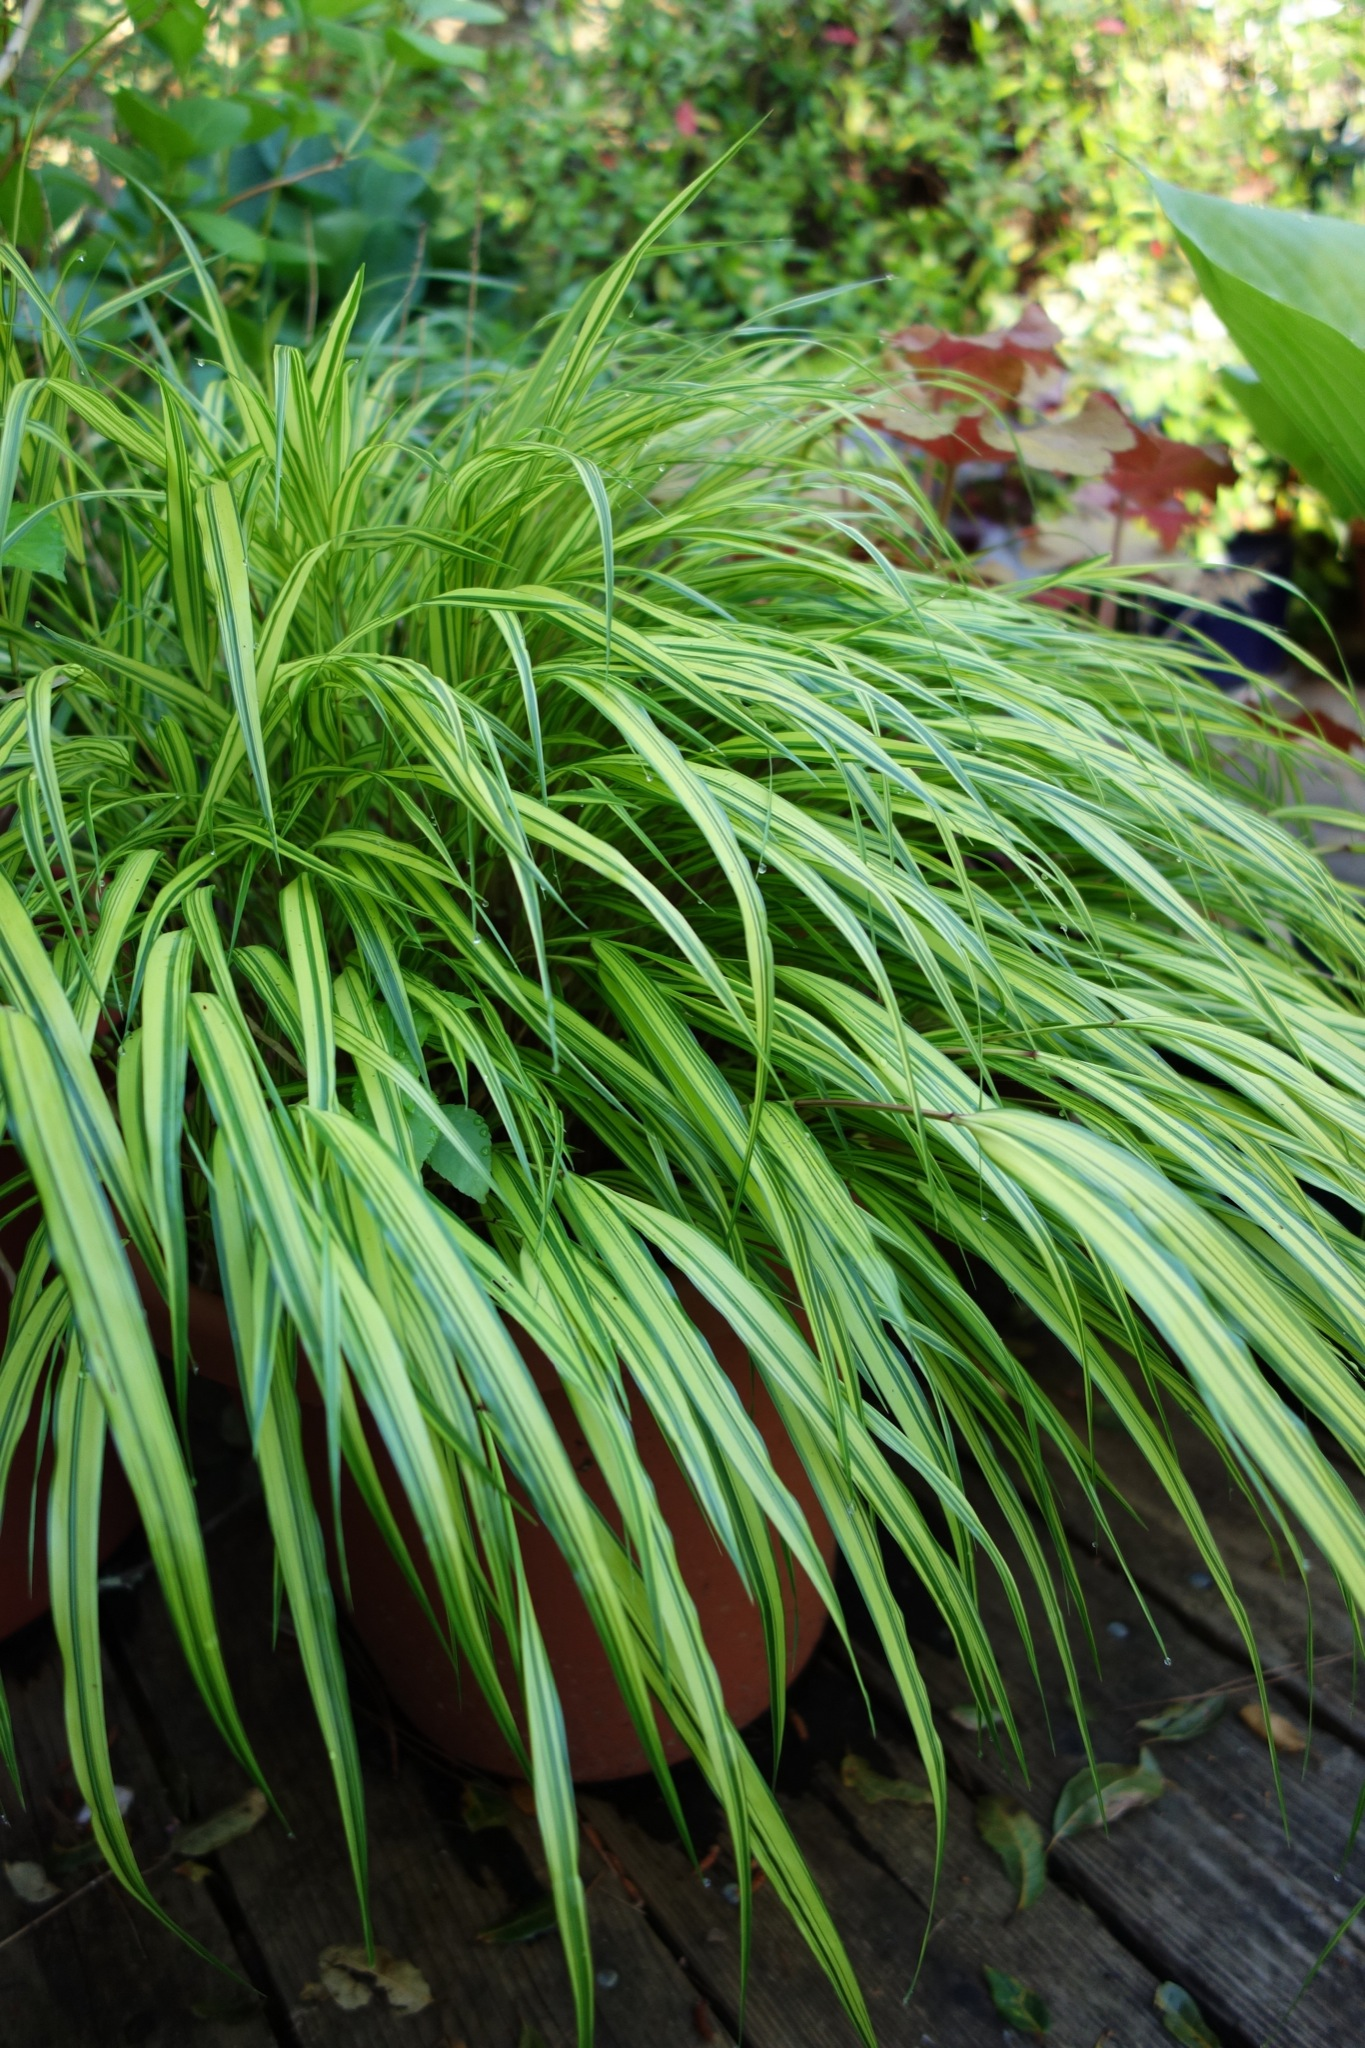 Water Features Gardening Tips For The Santa Cruz Mountains